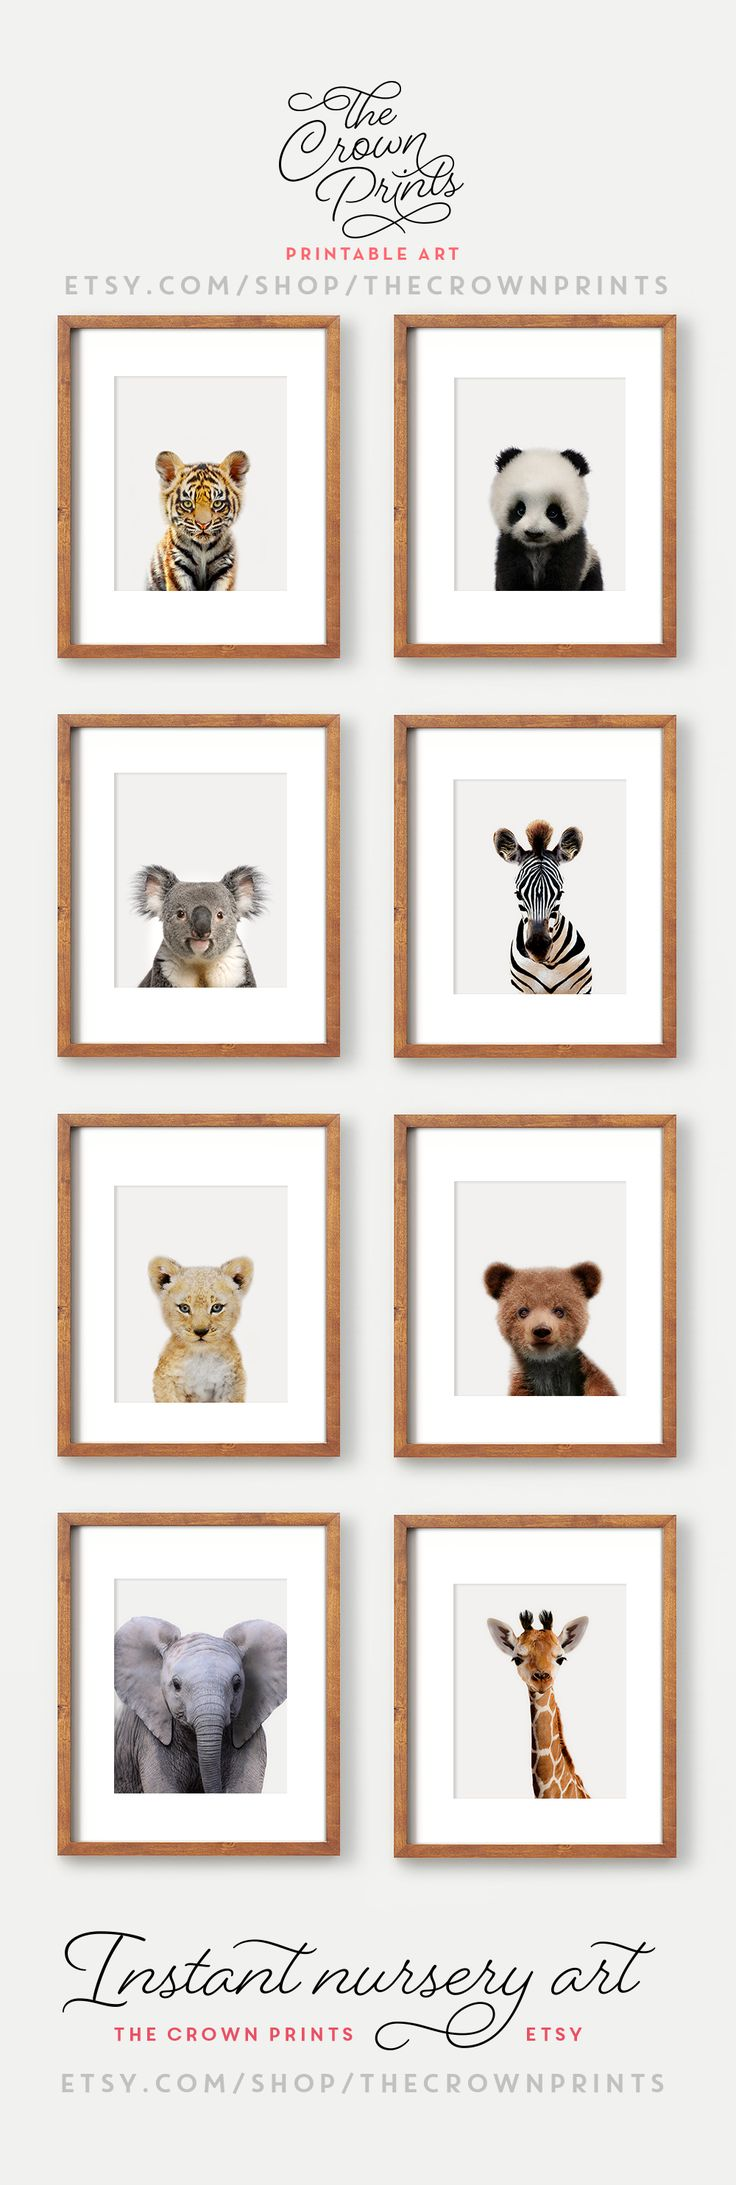 Printable nursery art - zoo animals theme, from The Crown Prints on Etsy